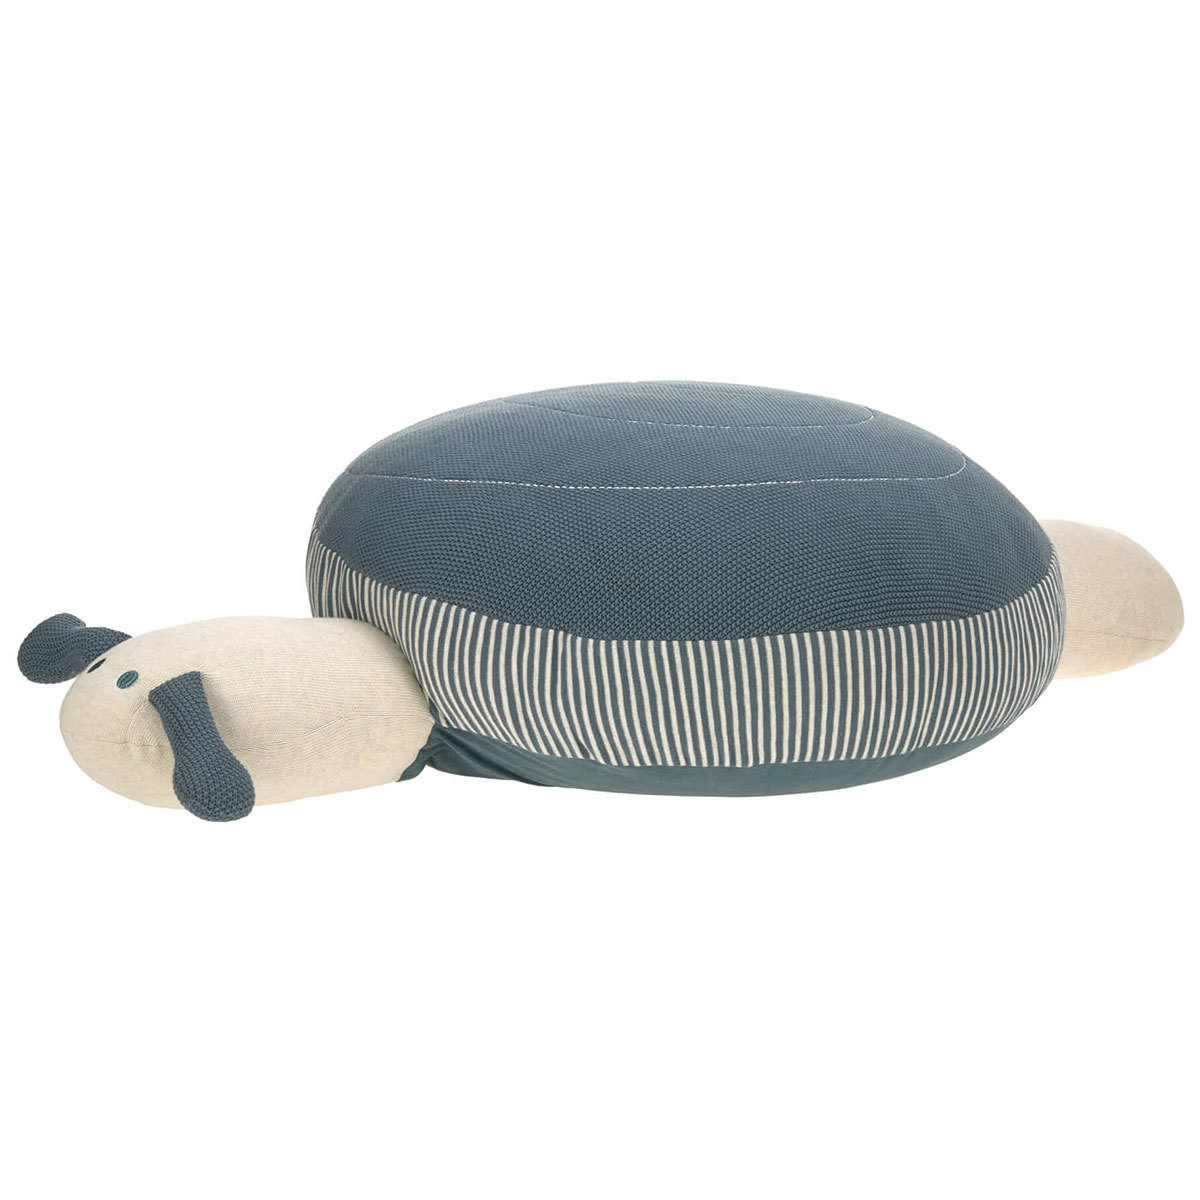 Table & Chaise Garden Explorer - Pouf Tricoté Escargot - Taille L Garden Explorer - Pouf Tricoté Escargot - Taille L